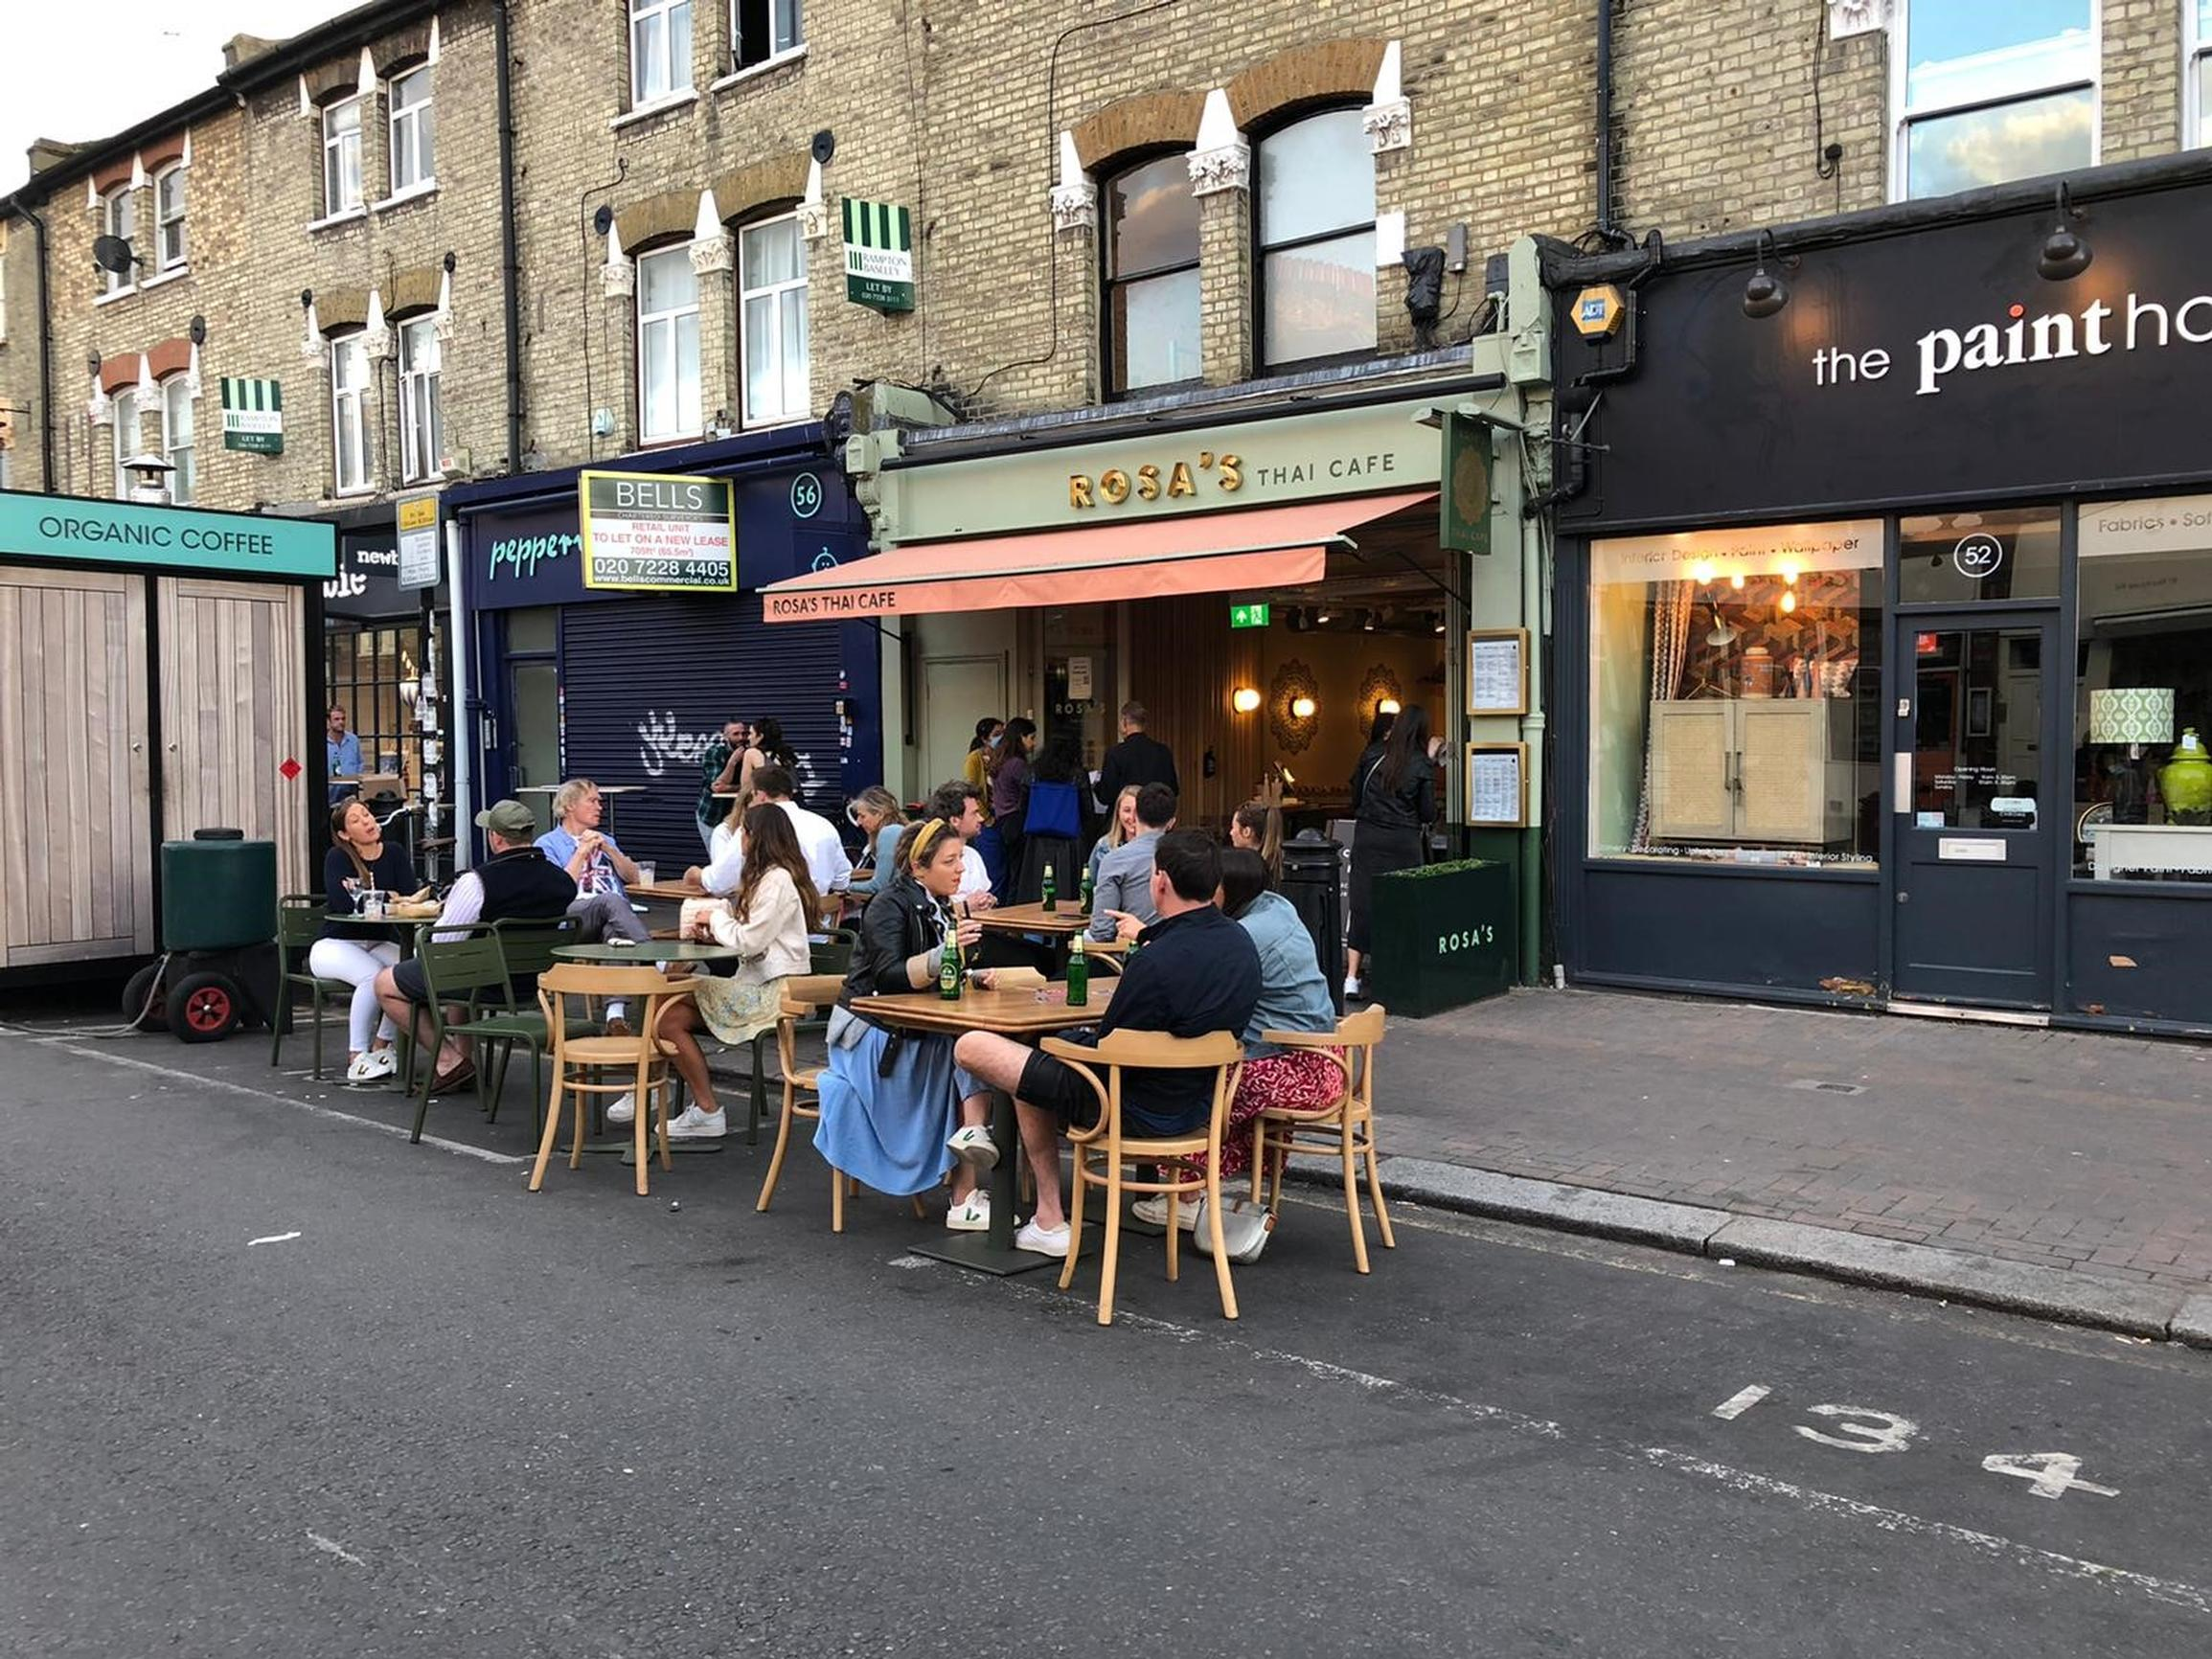 Northcote Road: cafes and restaurants recruited extra staff to cope with demand